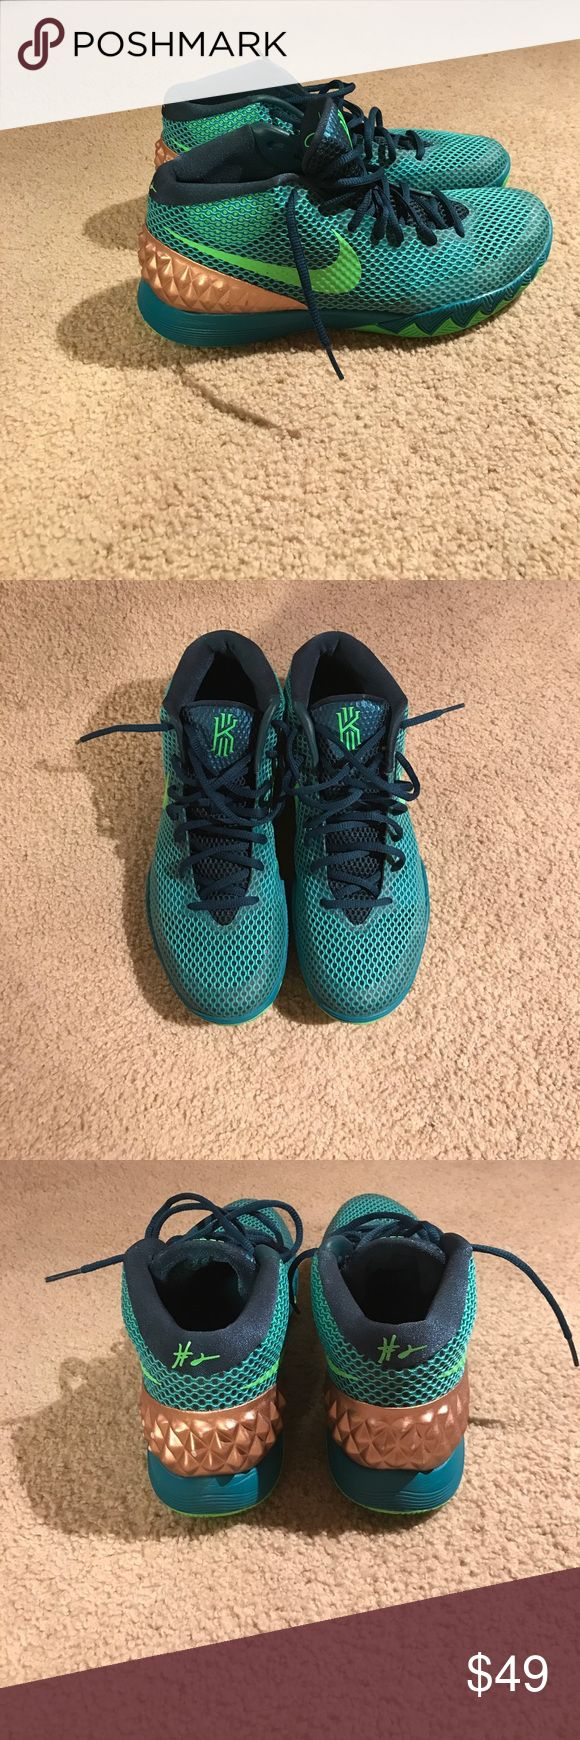 Nike Kyrie Irving Basketball Shoes Brand New Kyrie Irving Basketball Shoes. Worn once (didn't fit). Size 11. Will gladly negotiate price! Nike Shoes Athletic Shoes